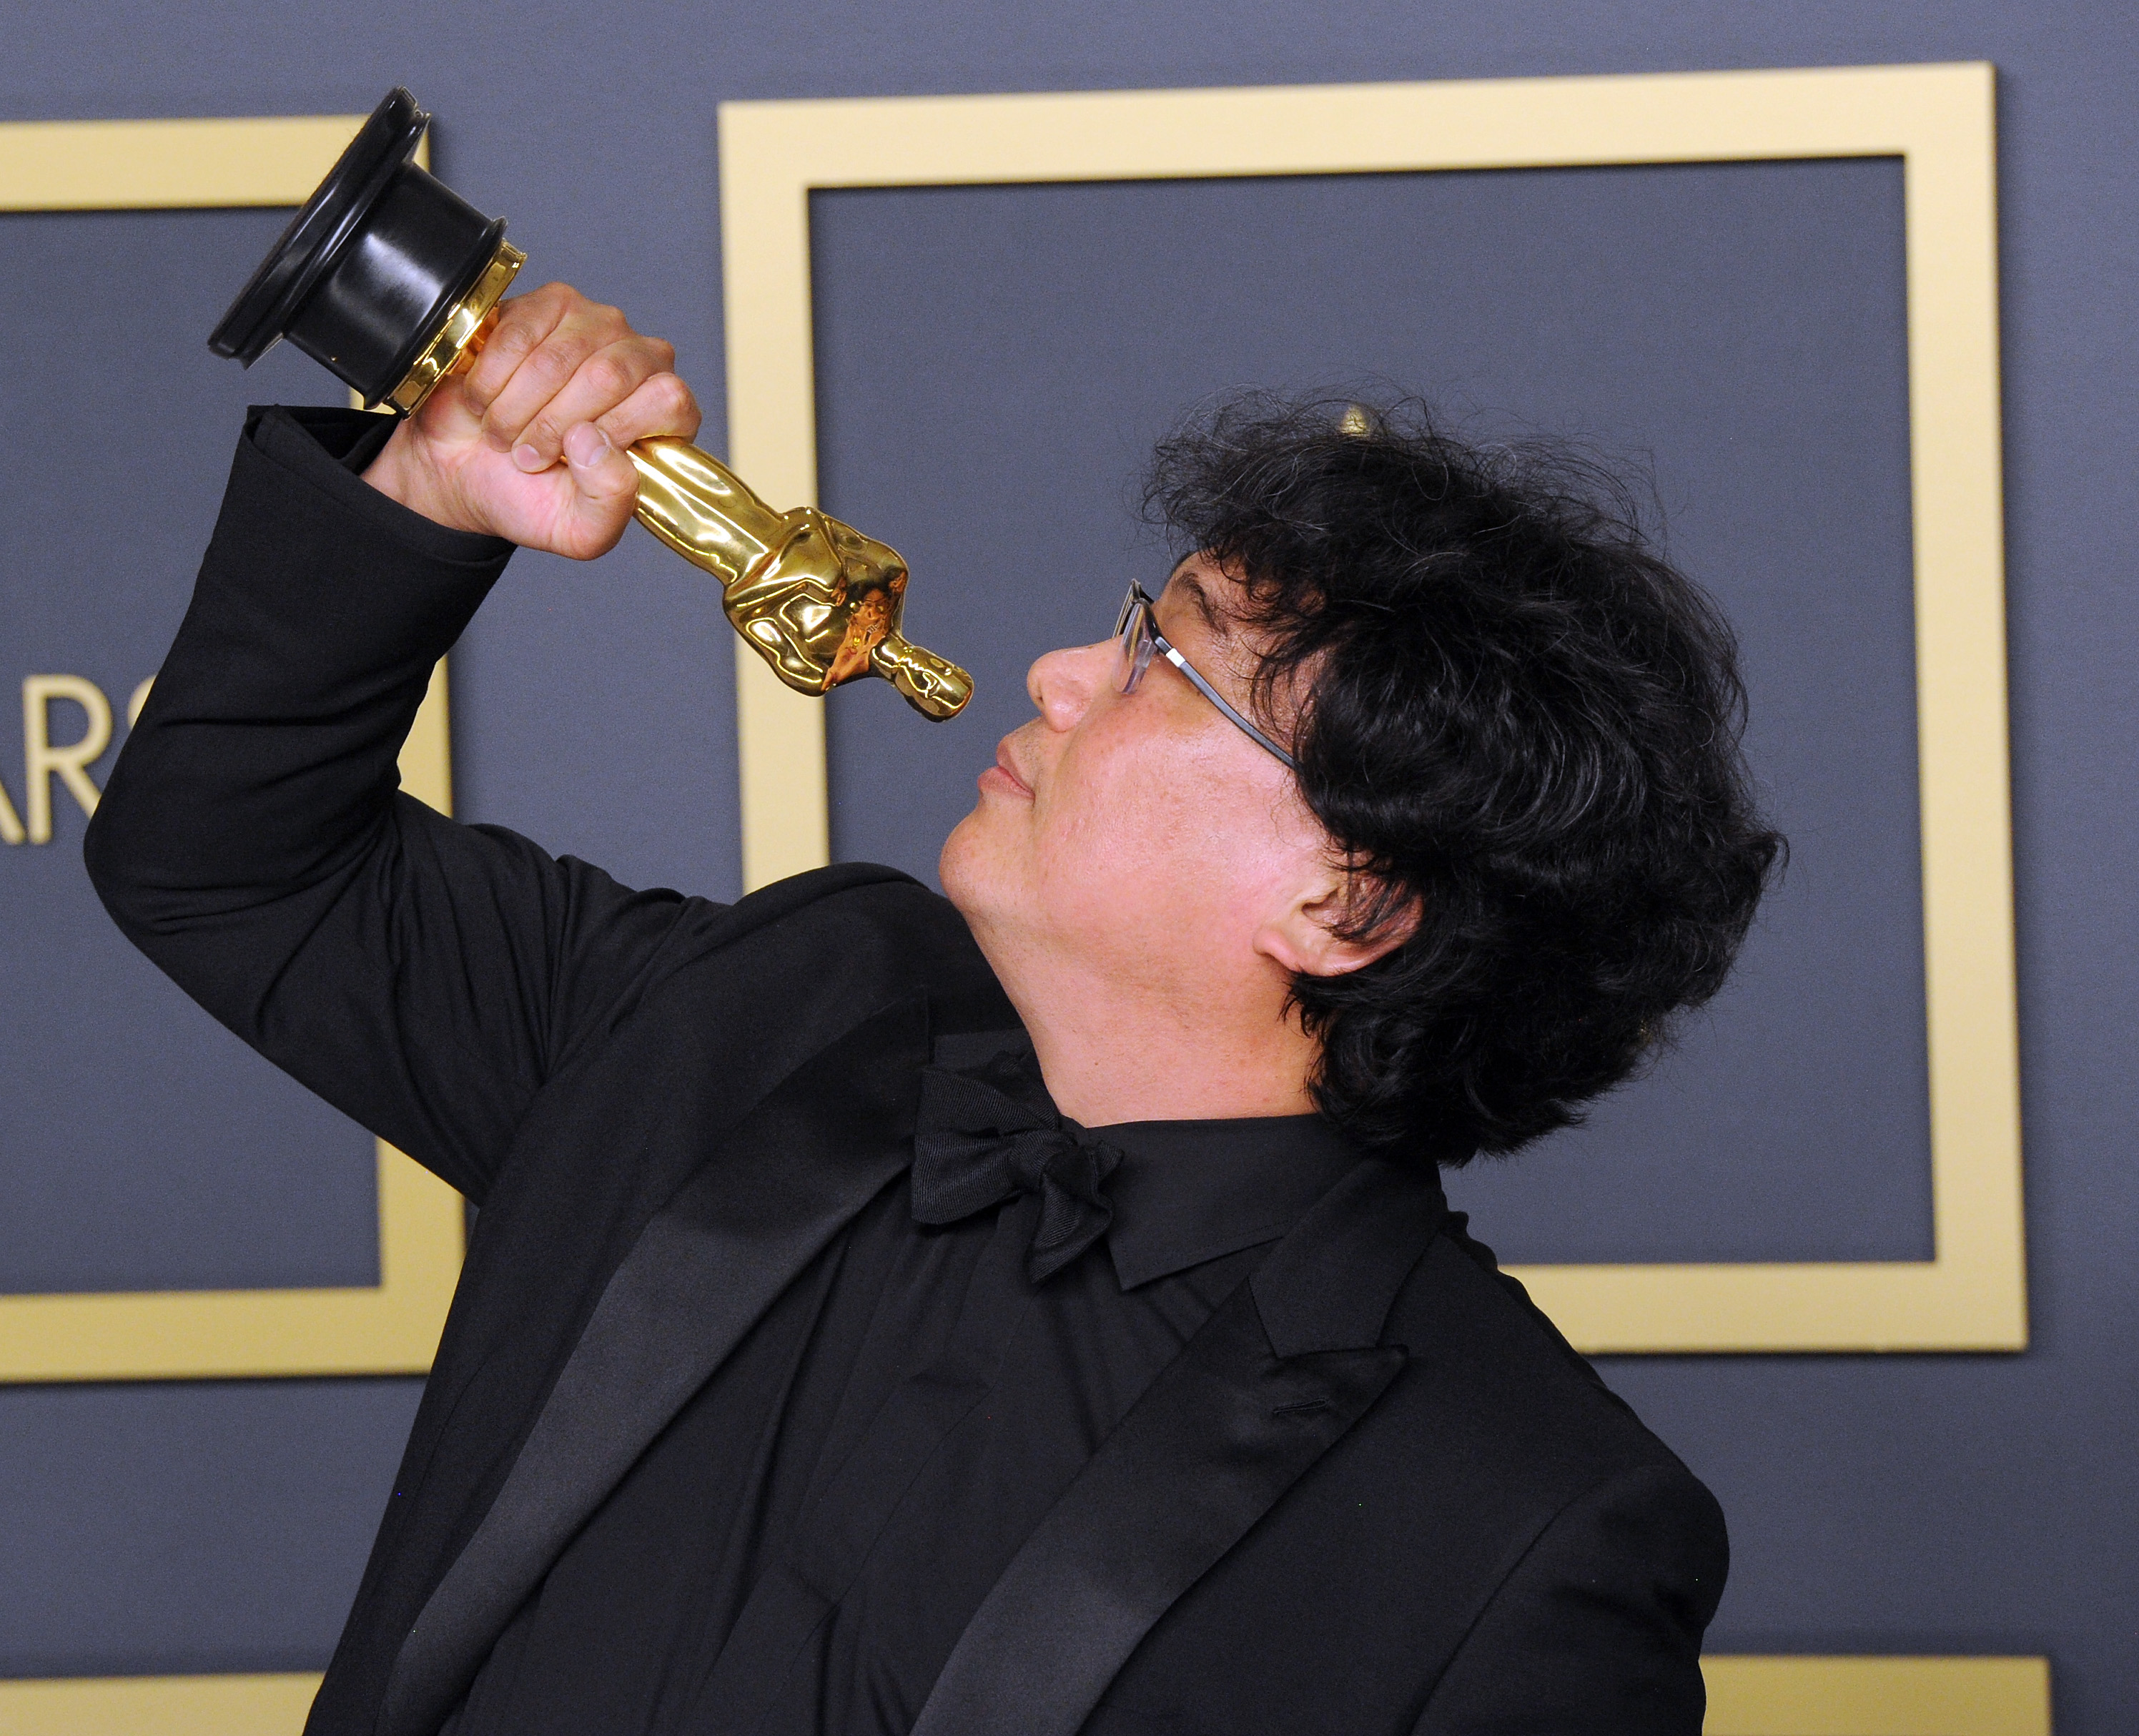 Bong Joon Ho poses with his Award for Best Director, Best Picture ('Parasite') inside The Press Room of the 92nd Annual Academy Awards held at Hollywood and Highland on February 9, 2020 in Hollywood, California.